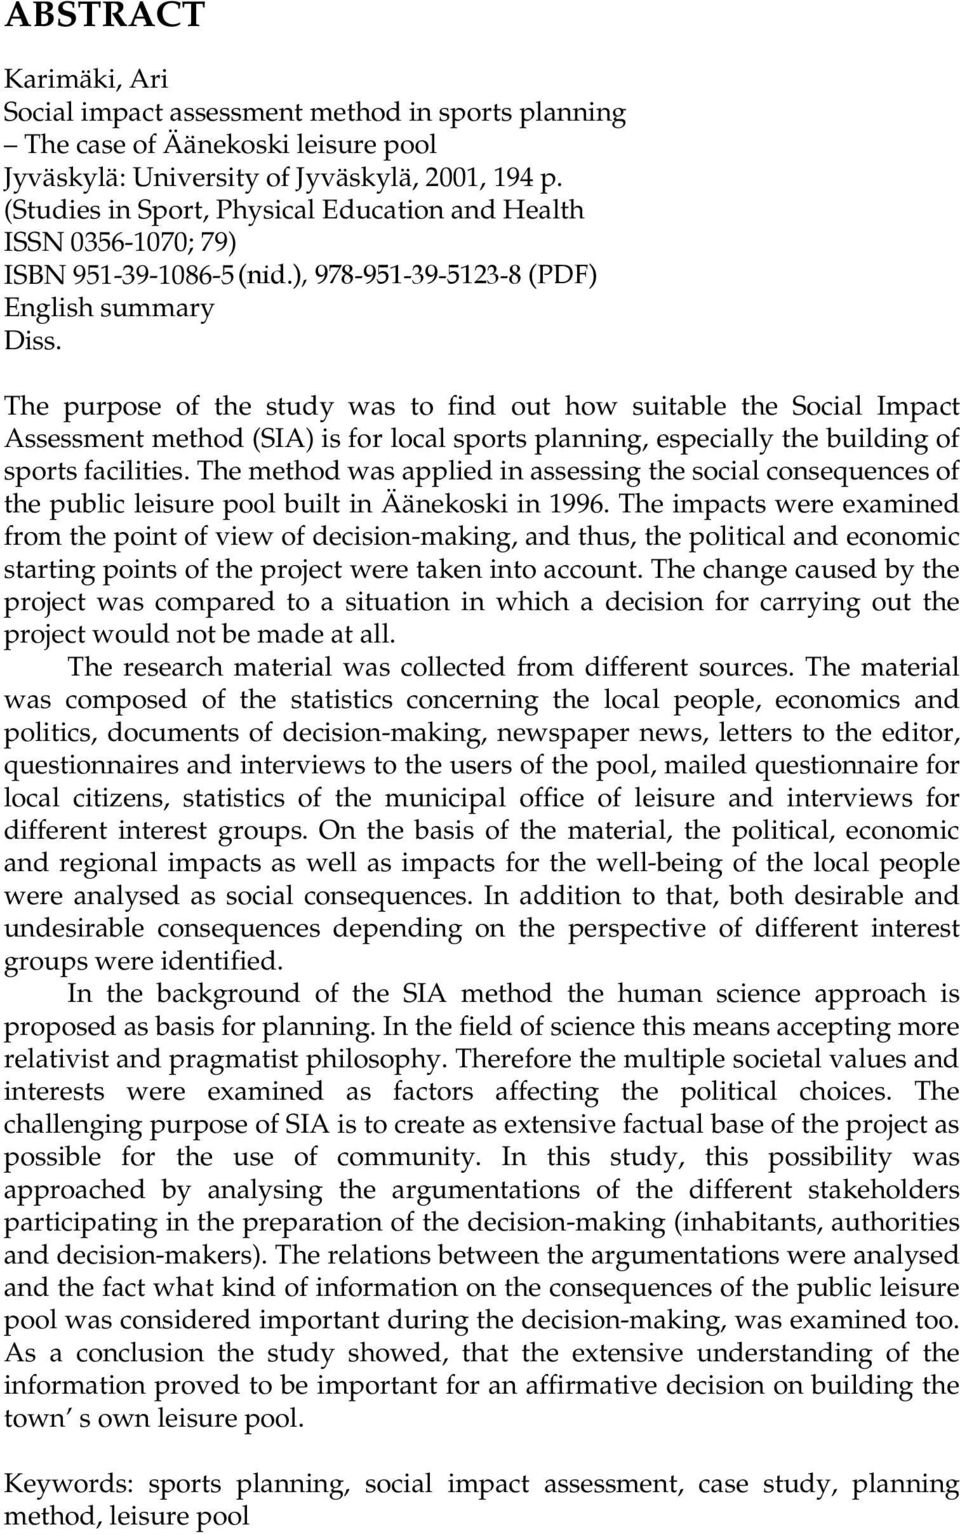 The purpose of the study was to find out how suitable the Social Impact Assessment method (SIA) is for local sports planning, especially the building of sports facilities.